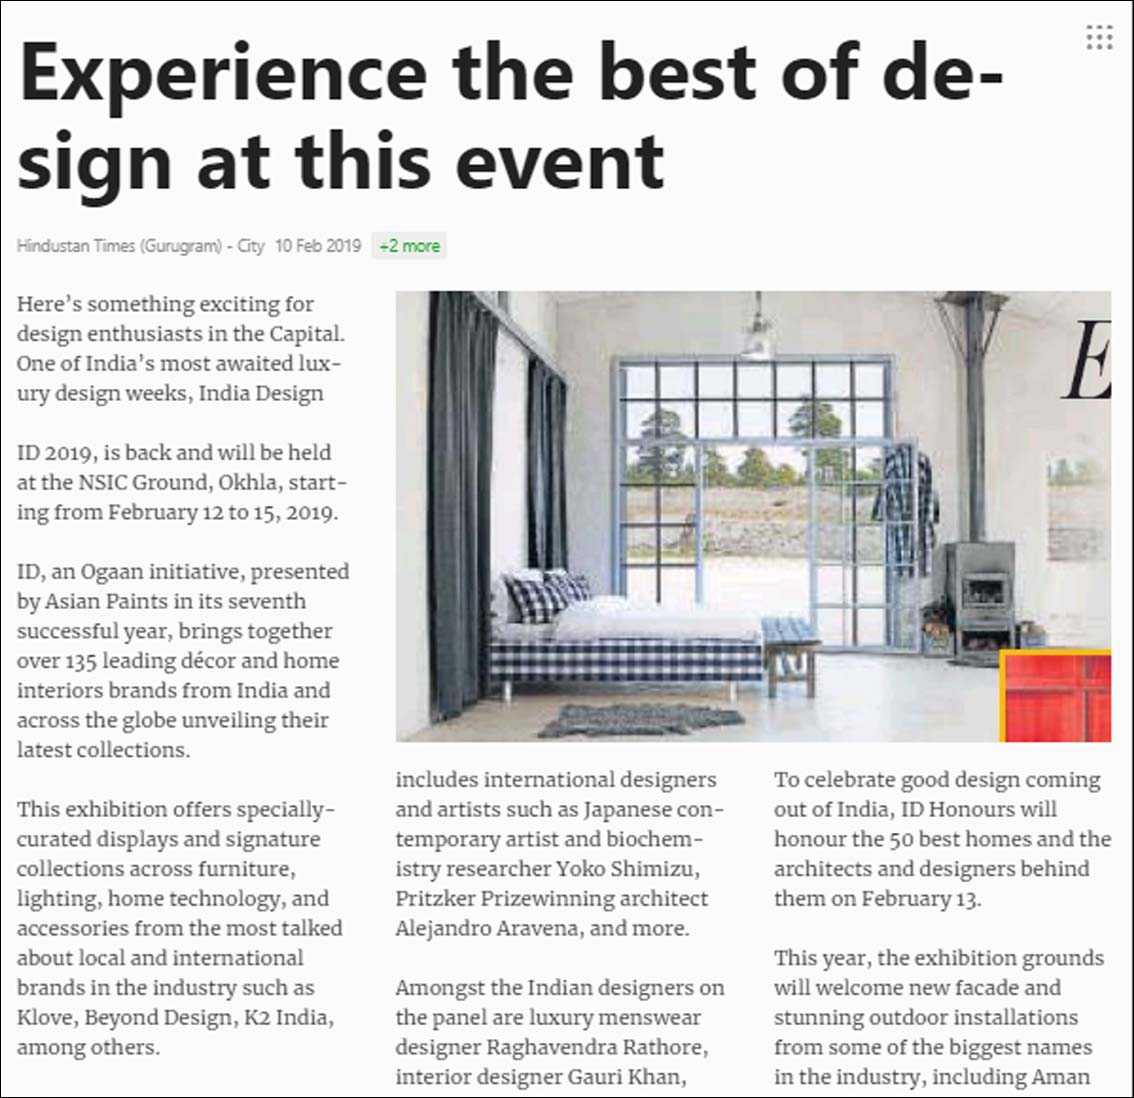 Experience the best of design at this event, Hindustan Times (Gurugram) - February 2019